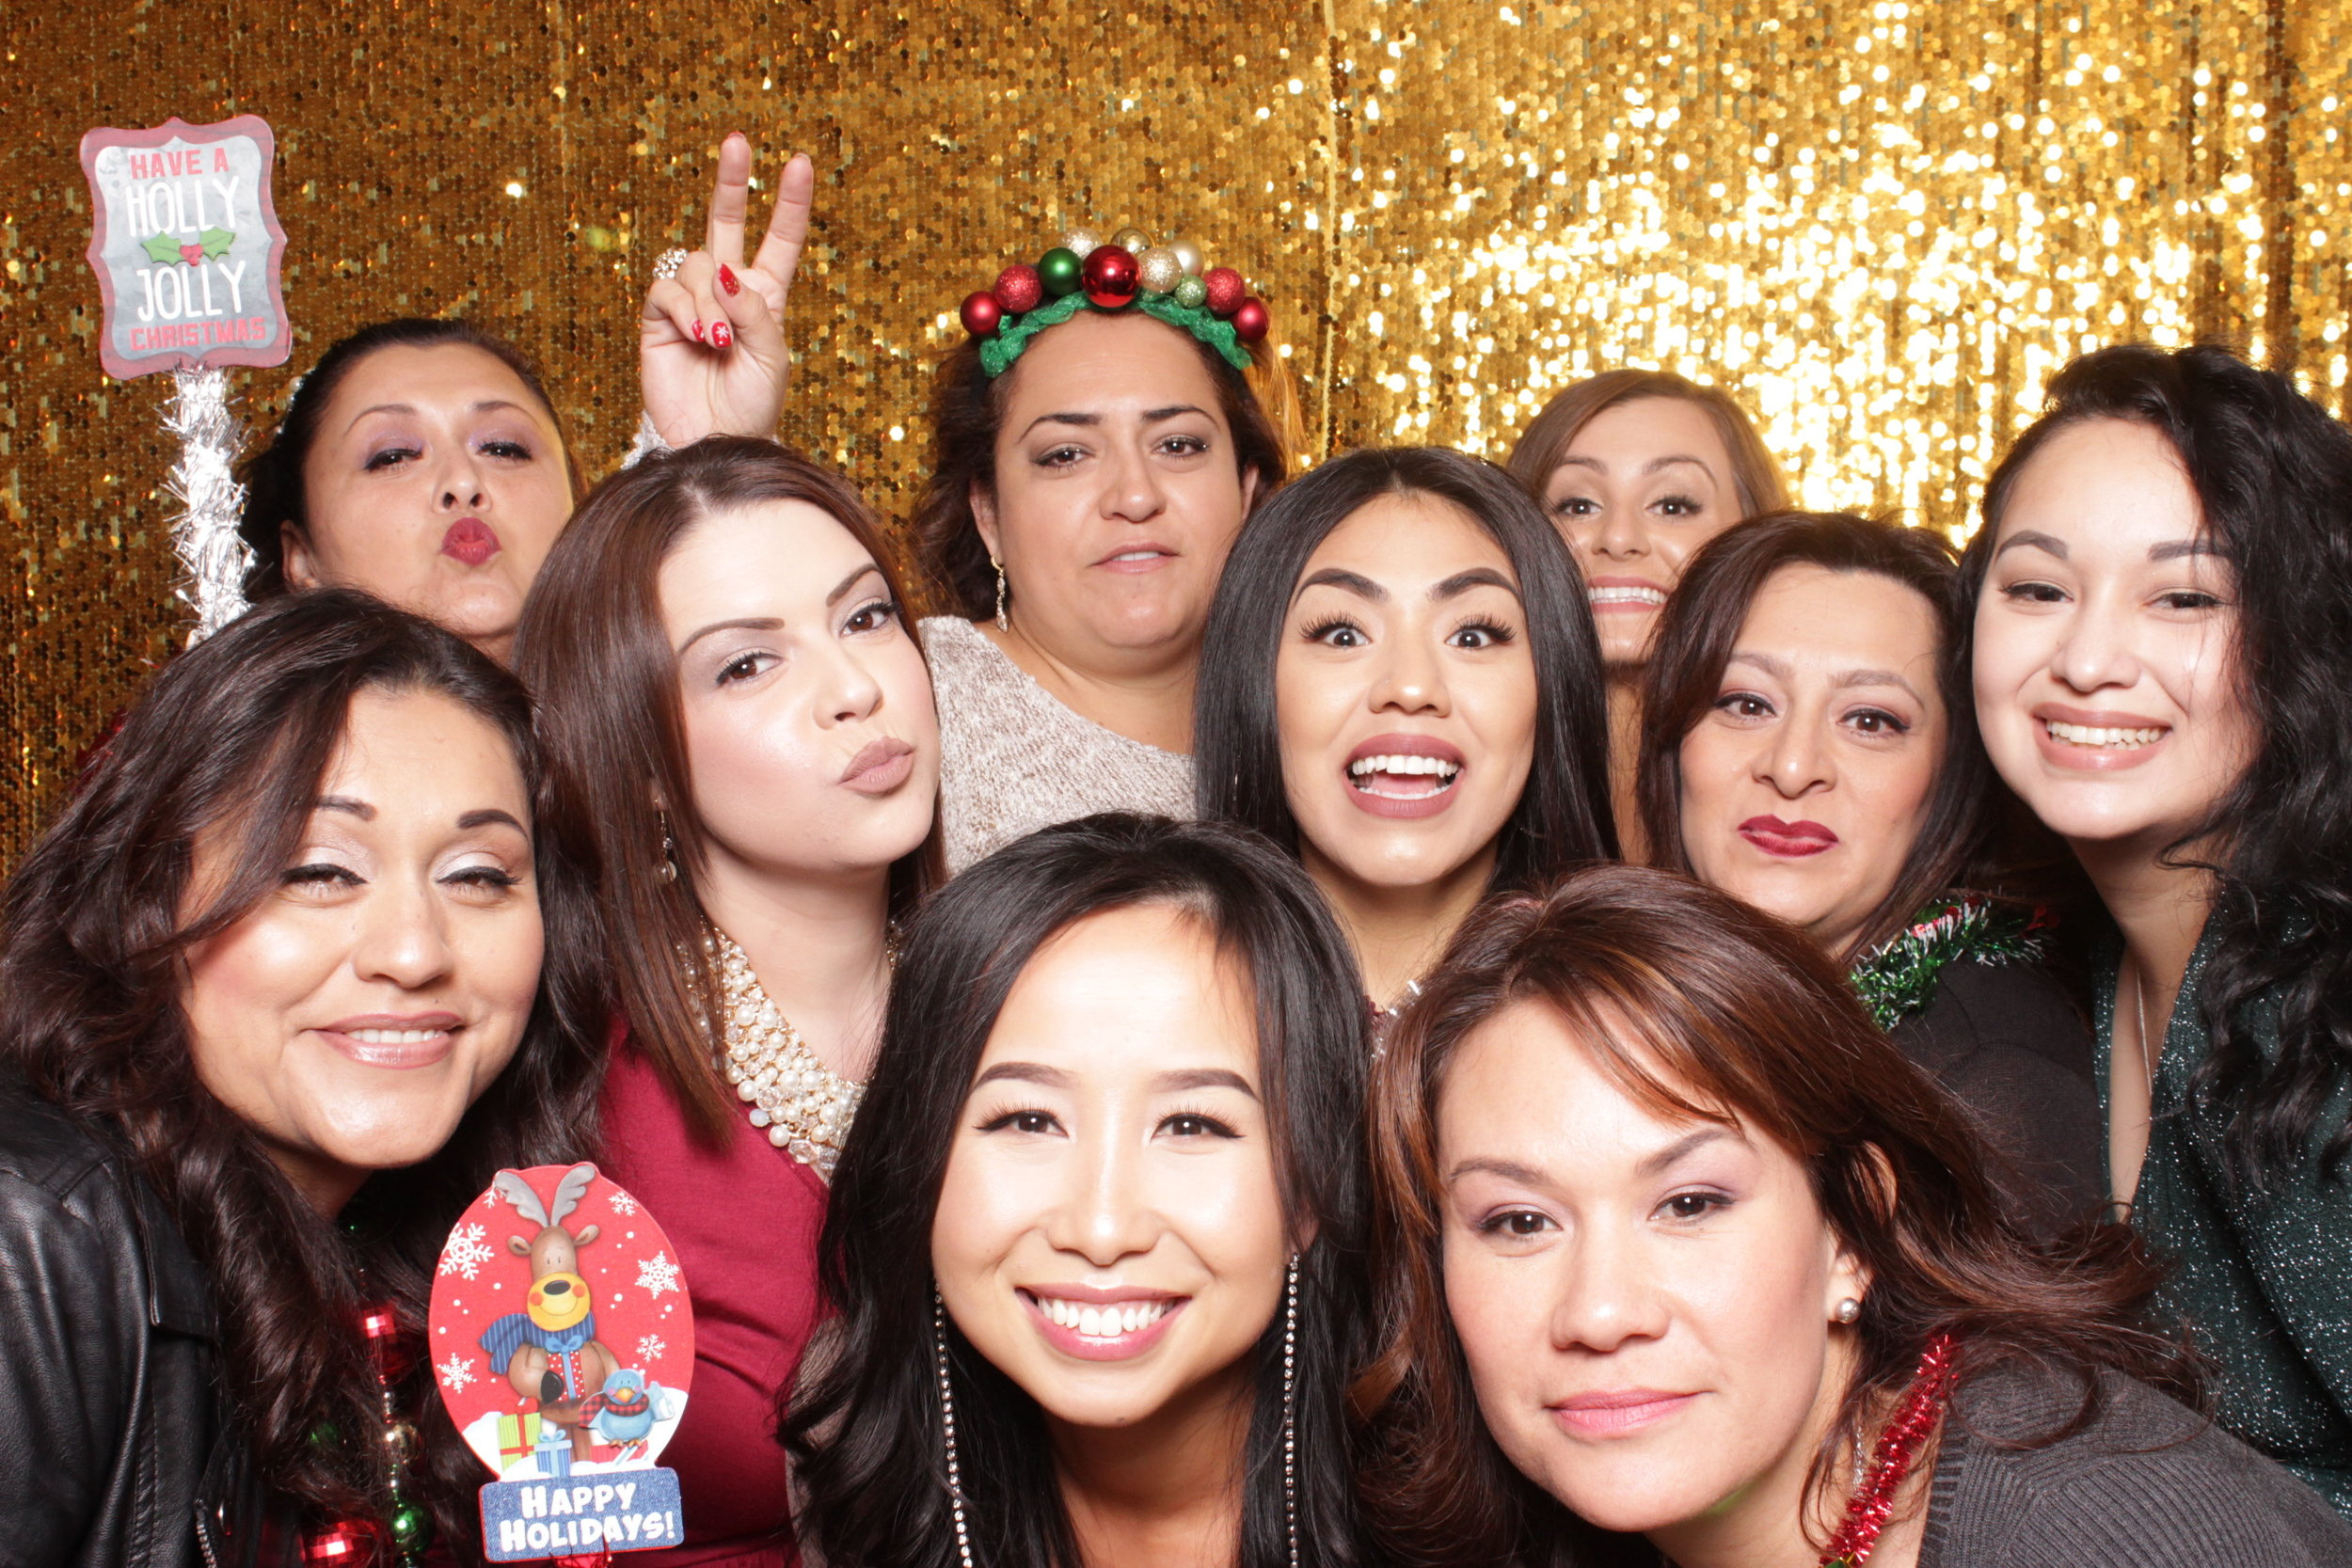 chico-photo-booth-holiday-rush-backdrop